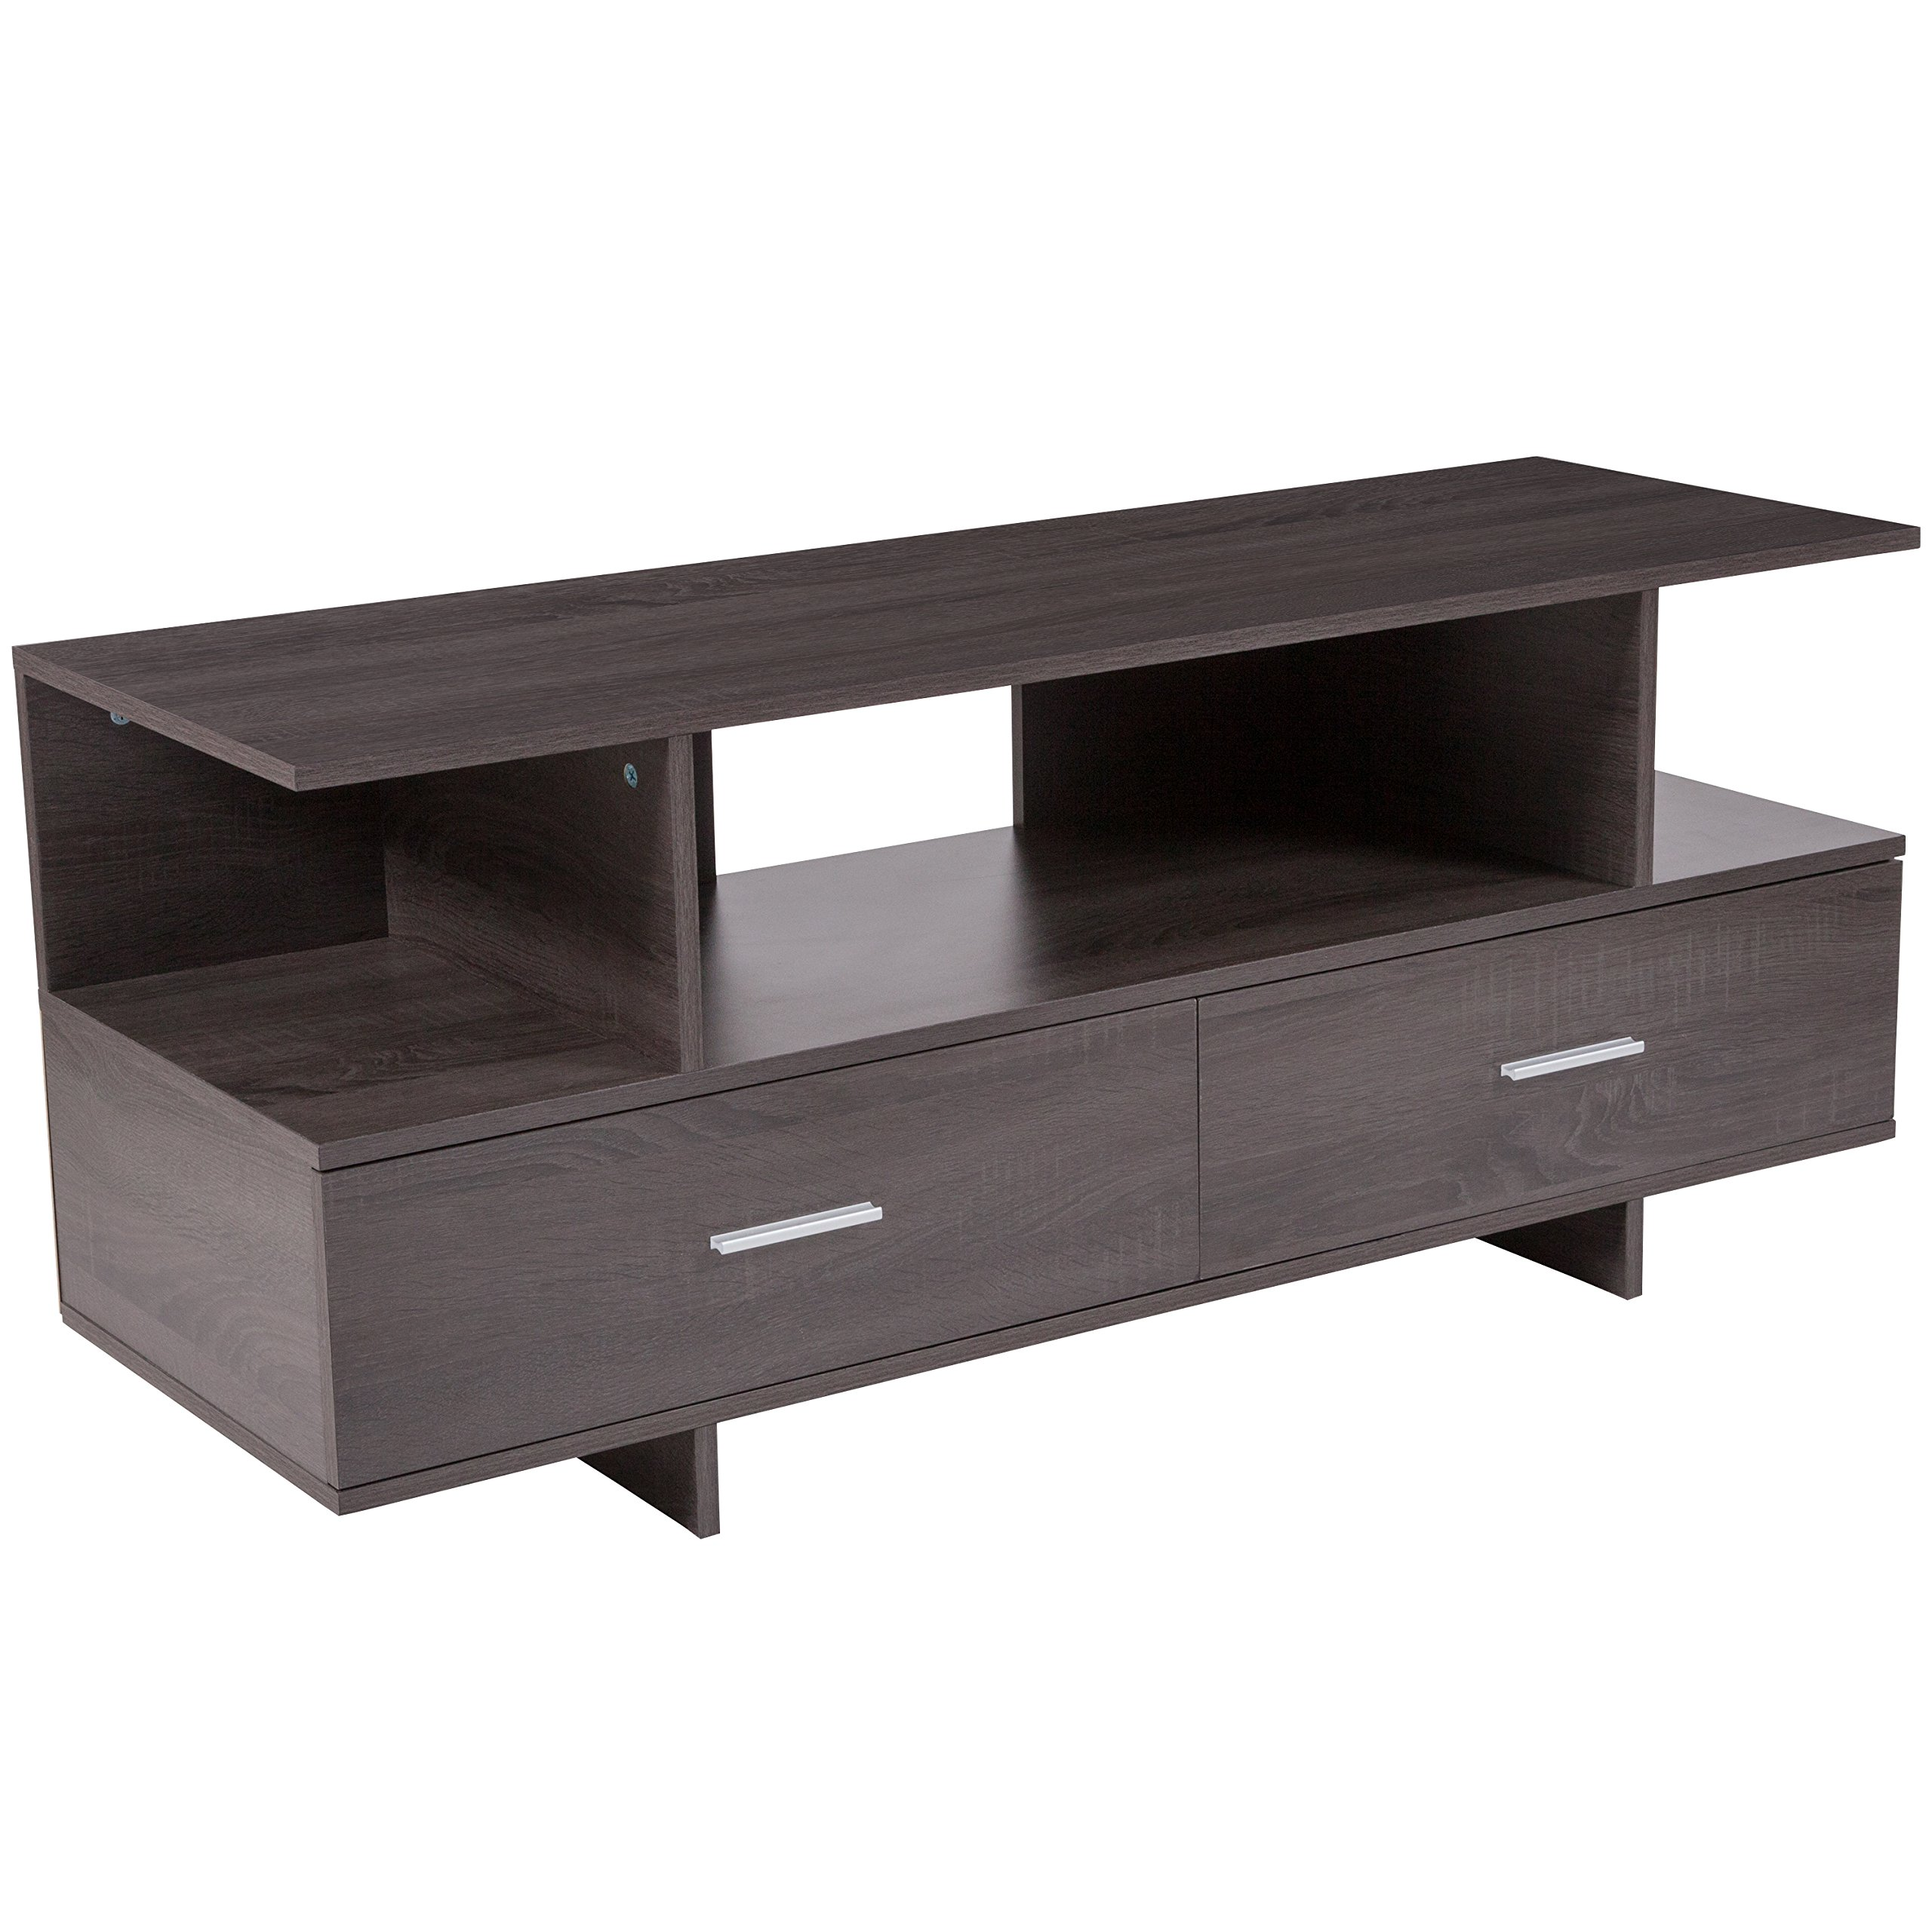 Flash Furniture Fields Driftwood Wood Grain Finish TV Stand and Media Console